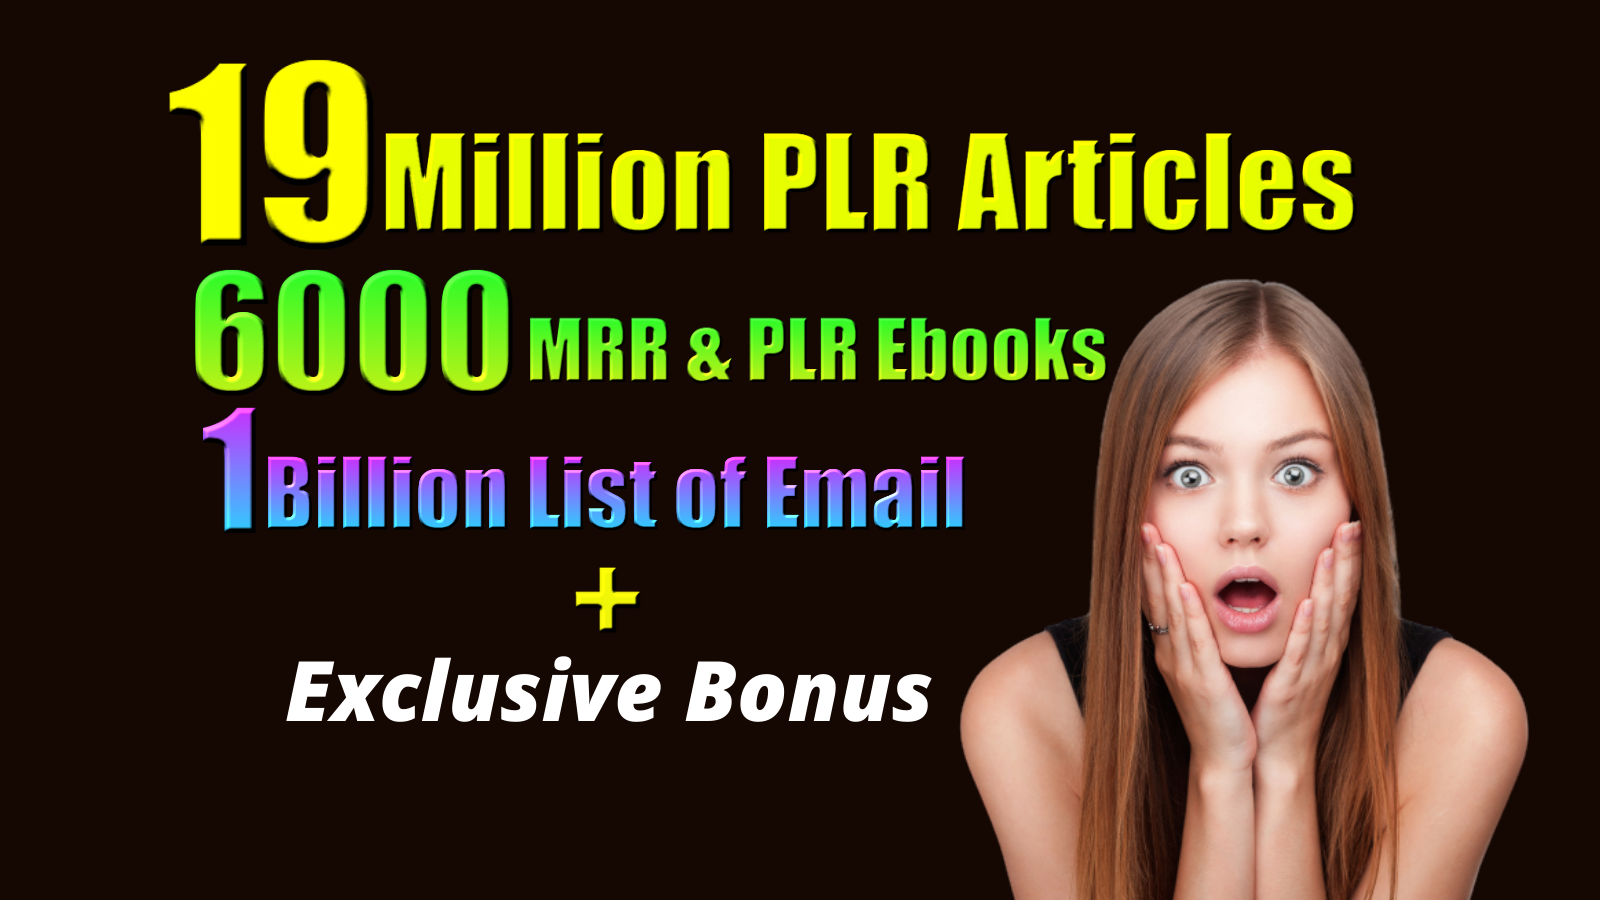 I will provide you 19 Million PLR articles,  6000 MRR &PLR EBook,  Email list of 1 Billion